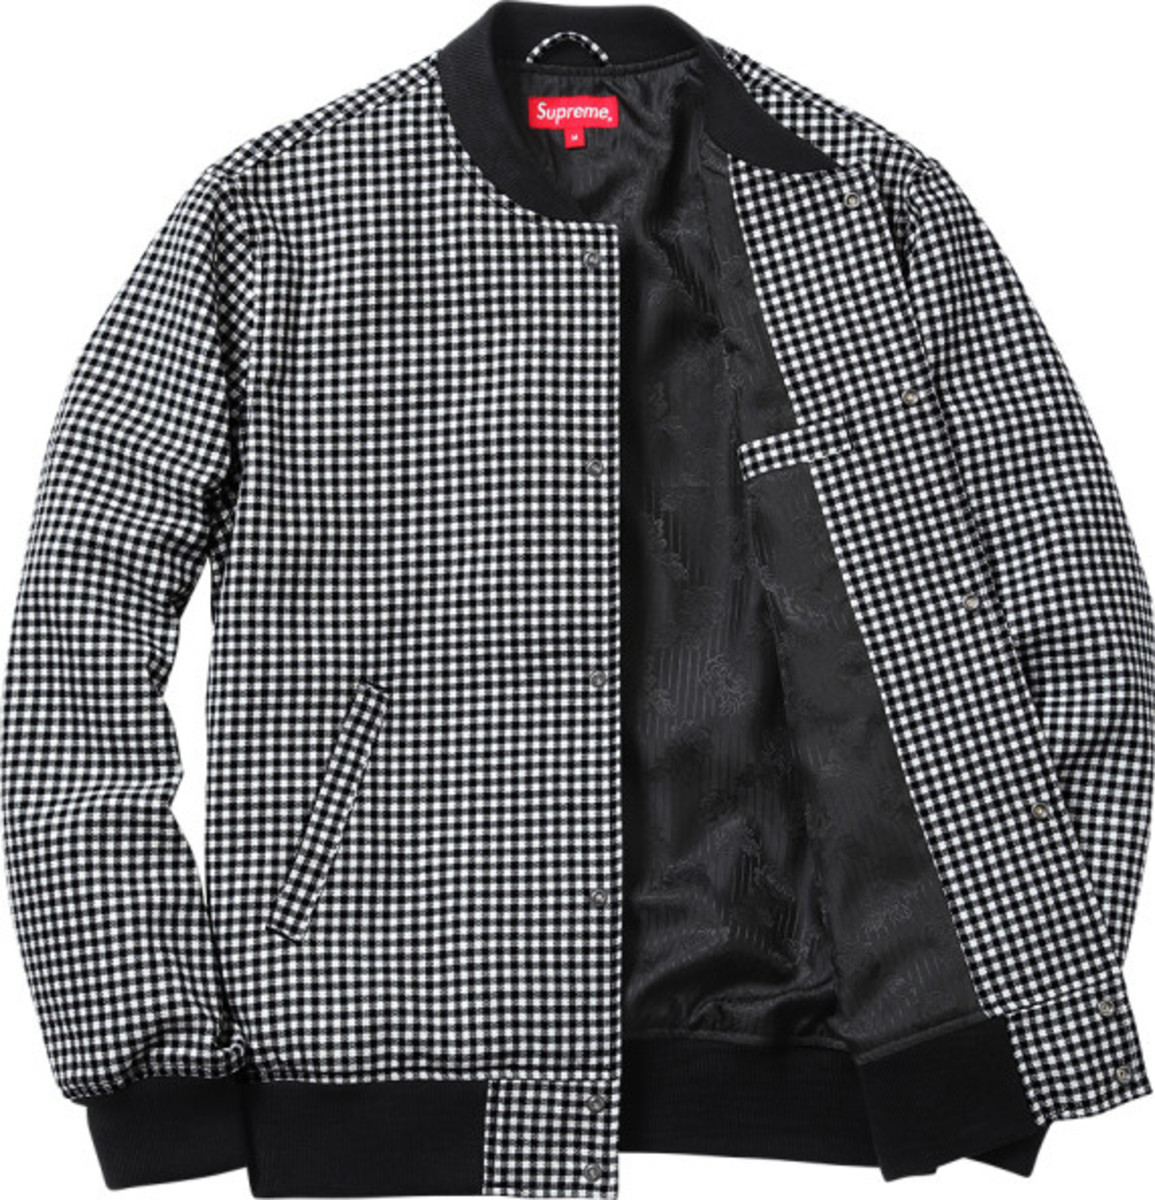 supreme-fall-winter-2013-outerwear-collection-78